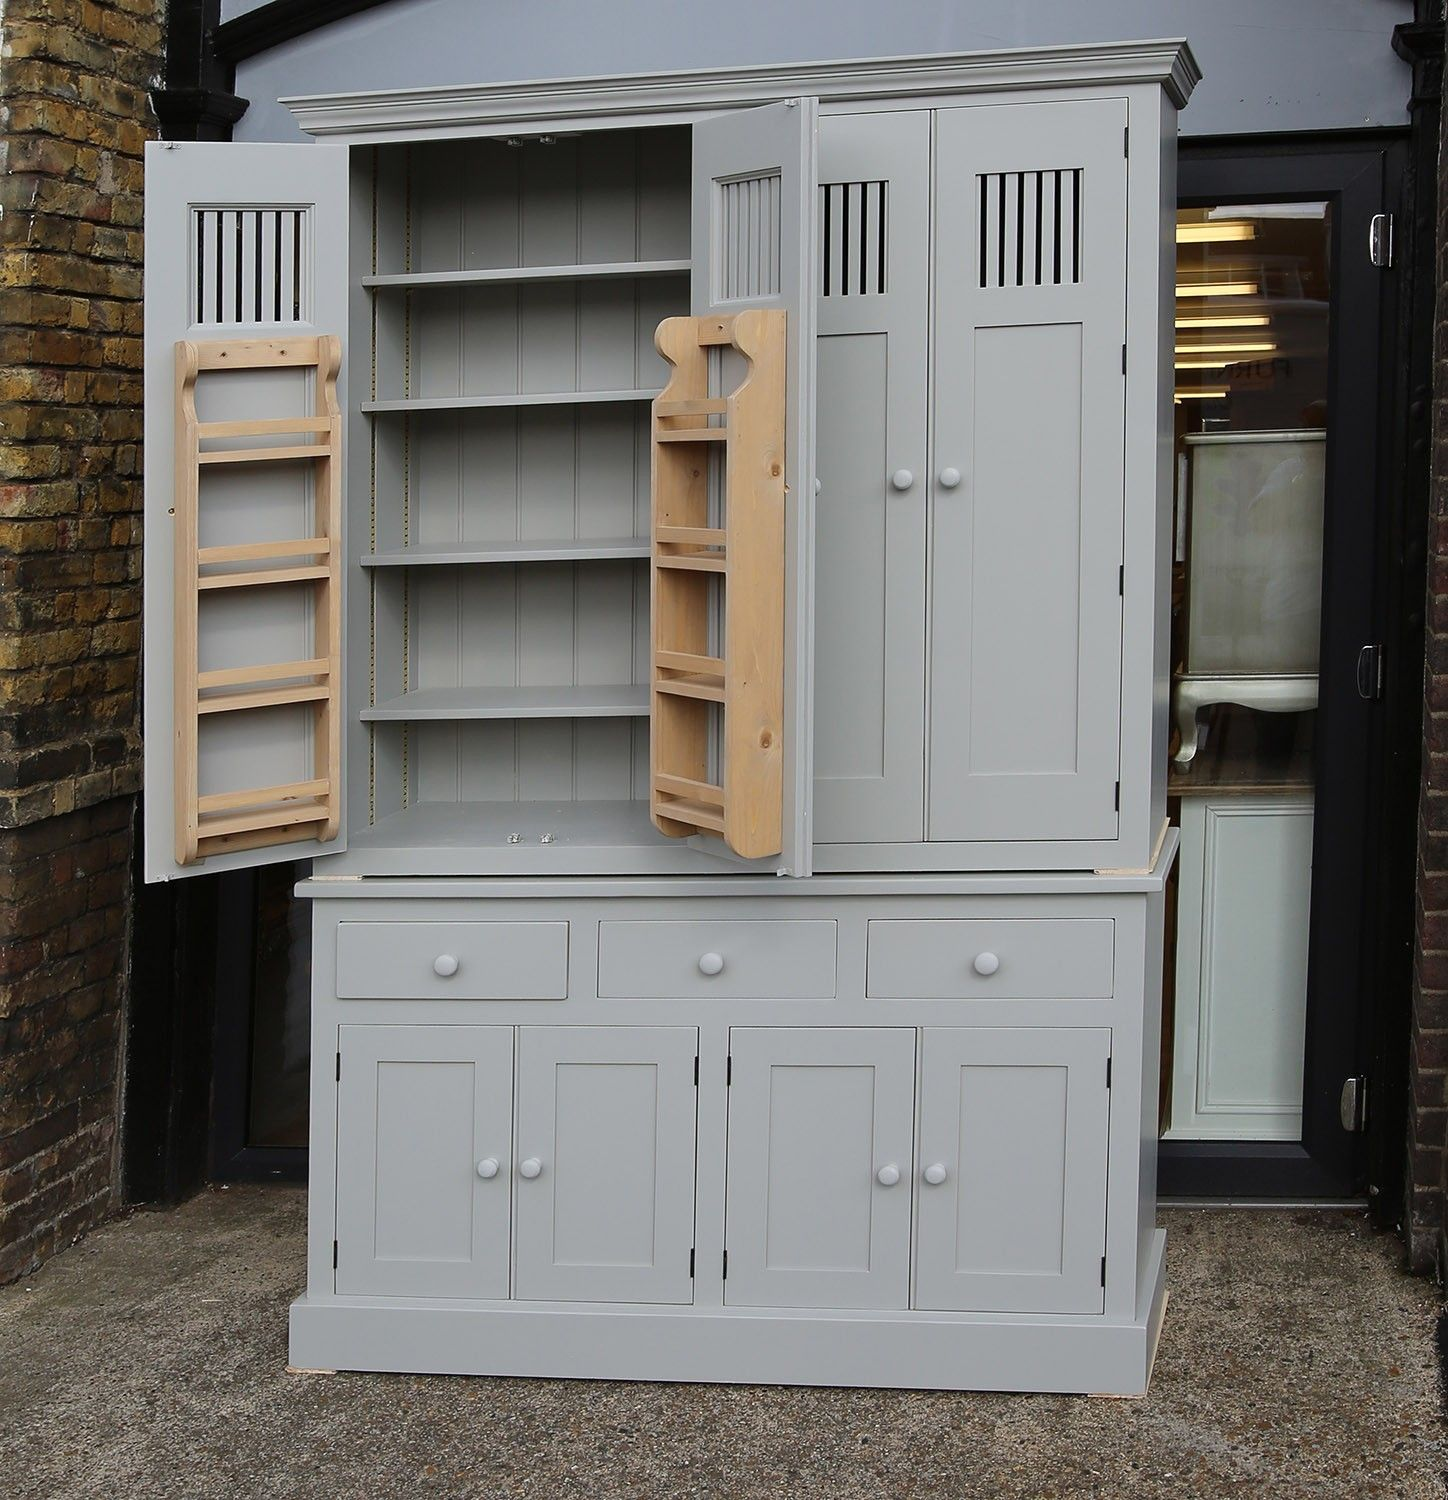 Farrow and Ball Painted Large 4 Drawer Larder Cupboards With Vented Doors In All Sizes & Farrow and Ball Painted Large 4 Drawer Larder Cupboards With Vented ...